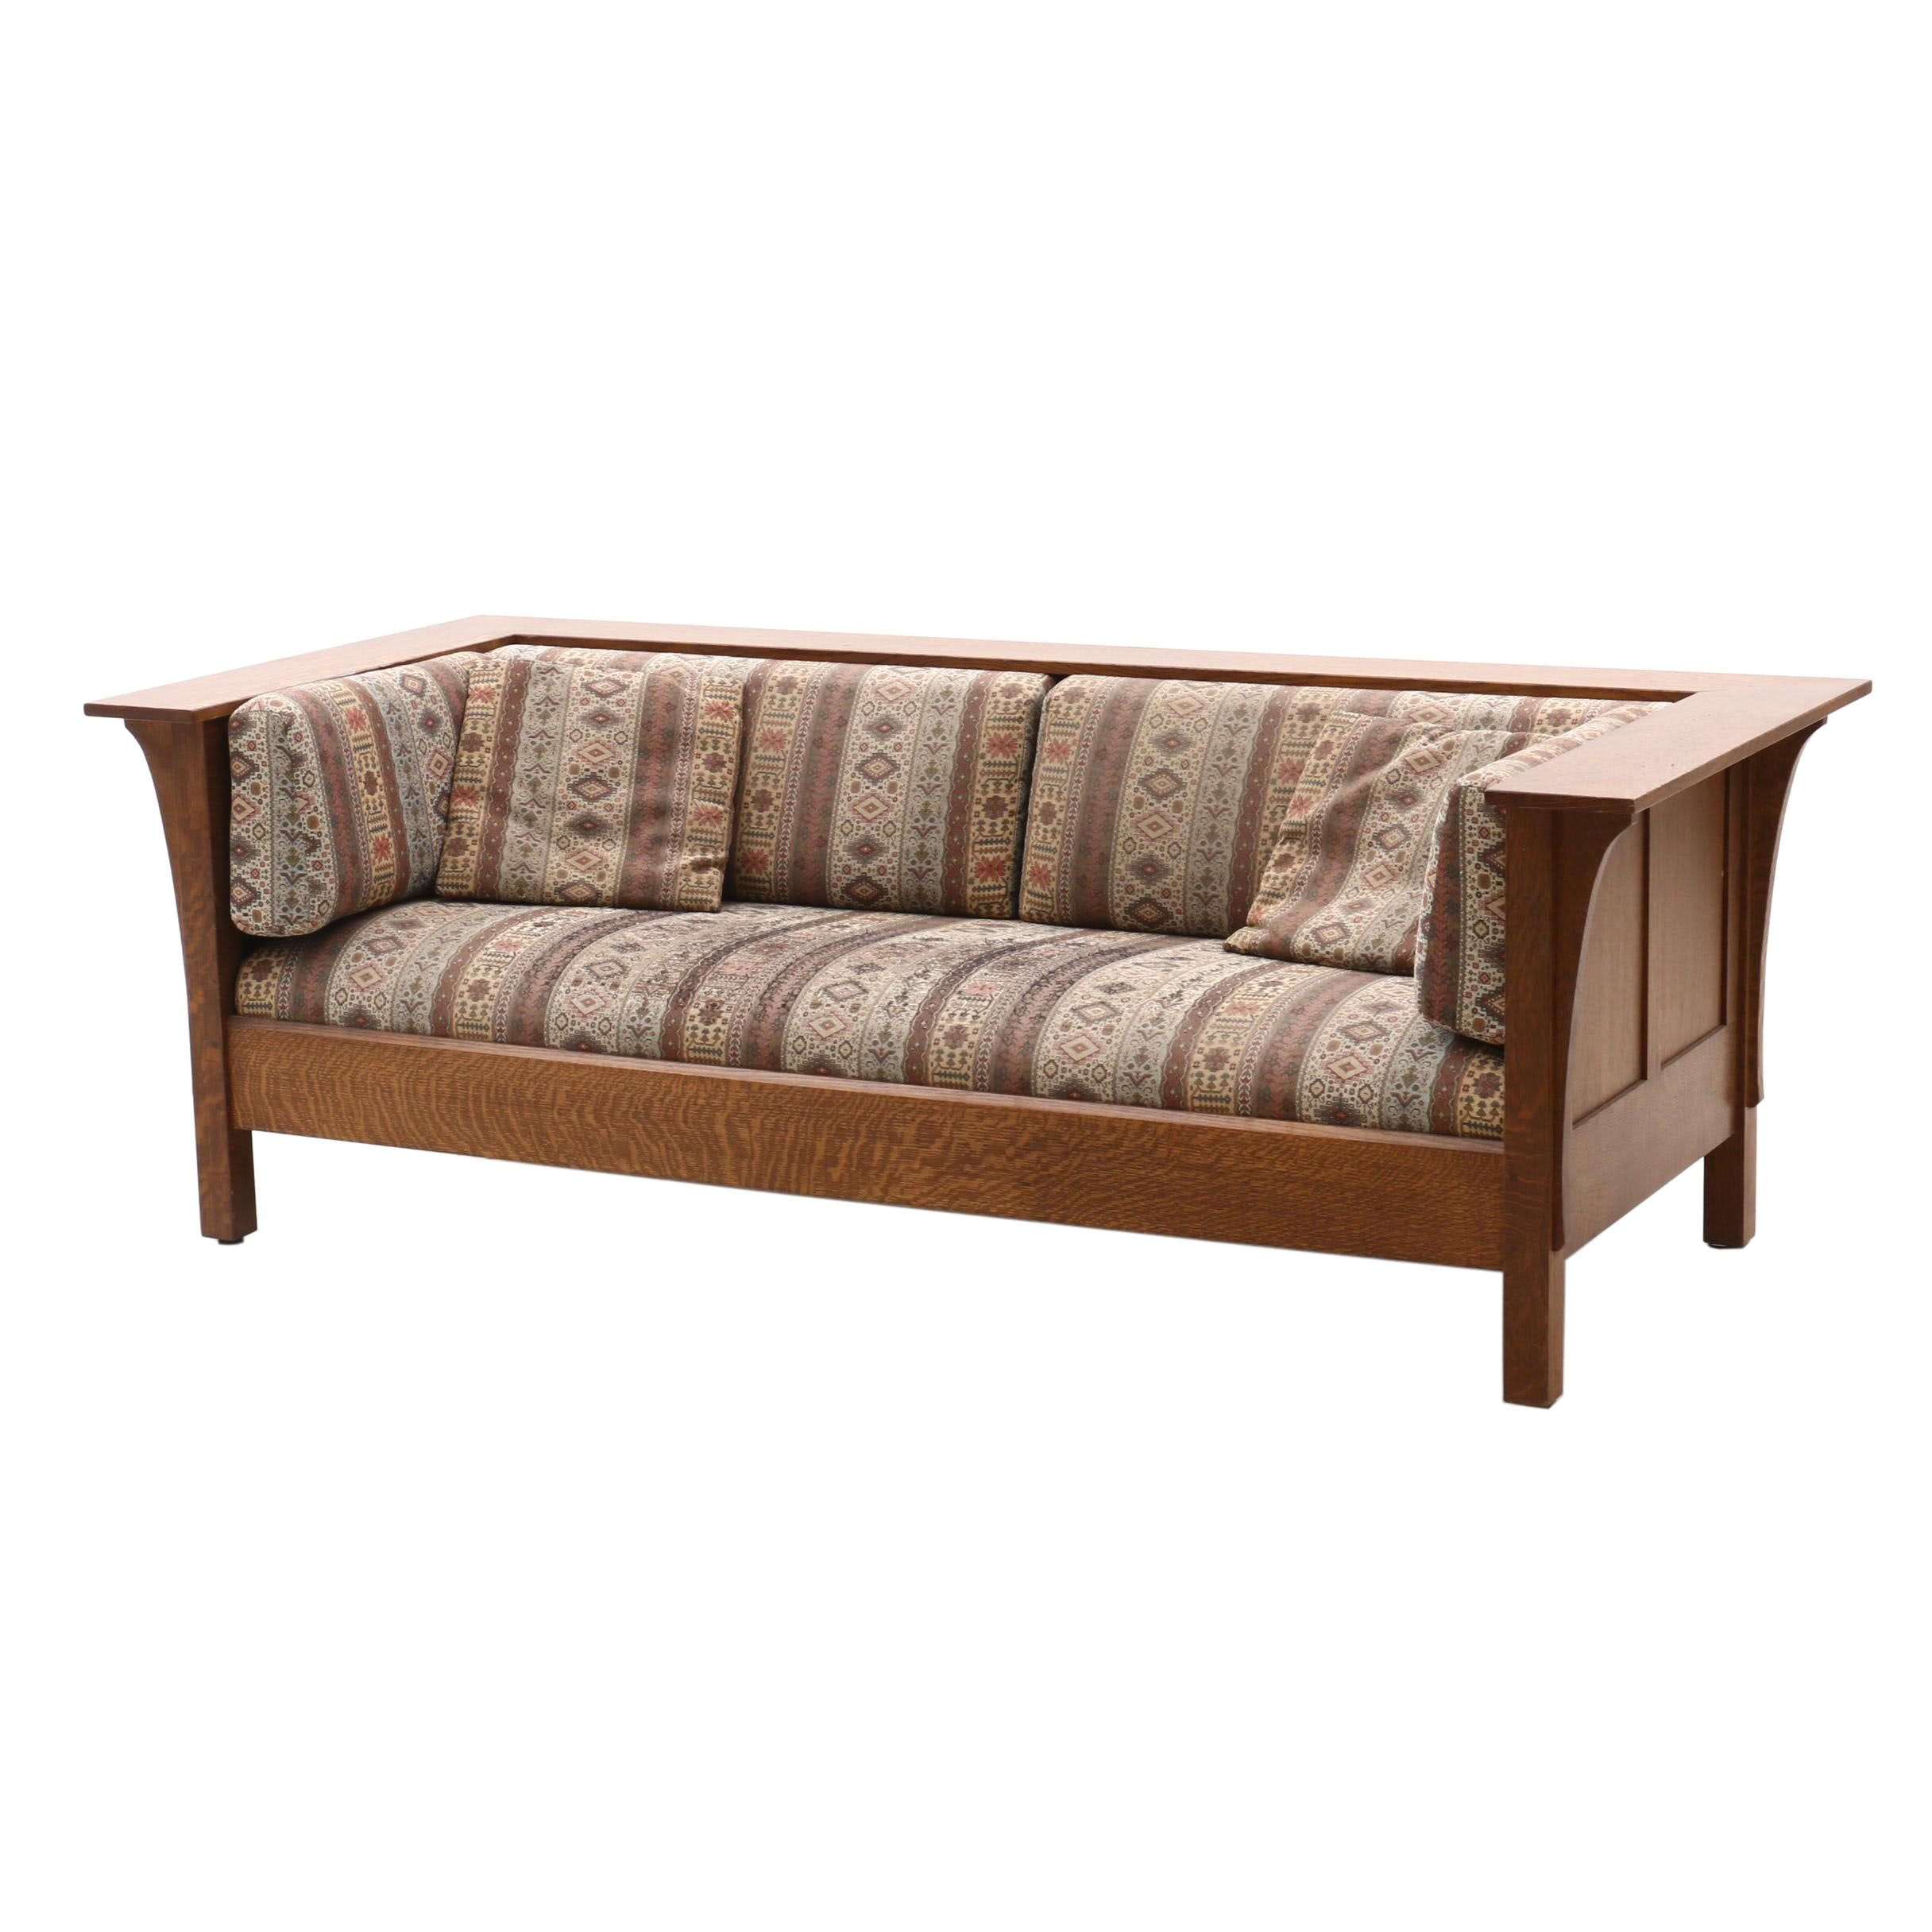 Arts and Crafts Style Stickley Oak Upholstered Sofa